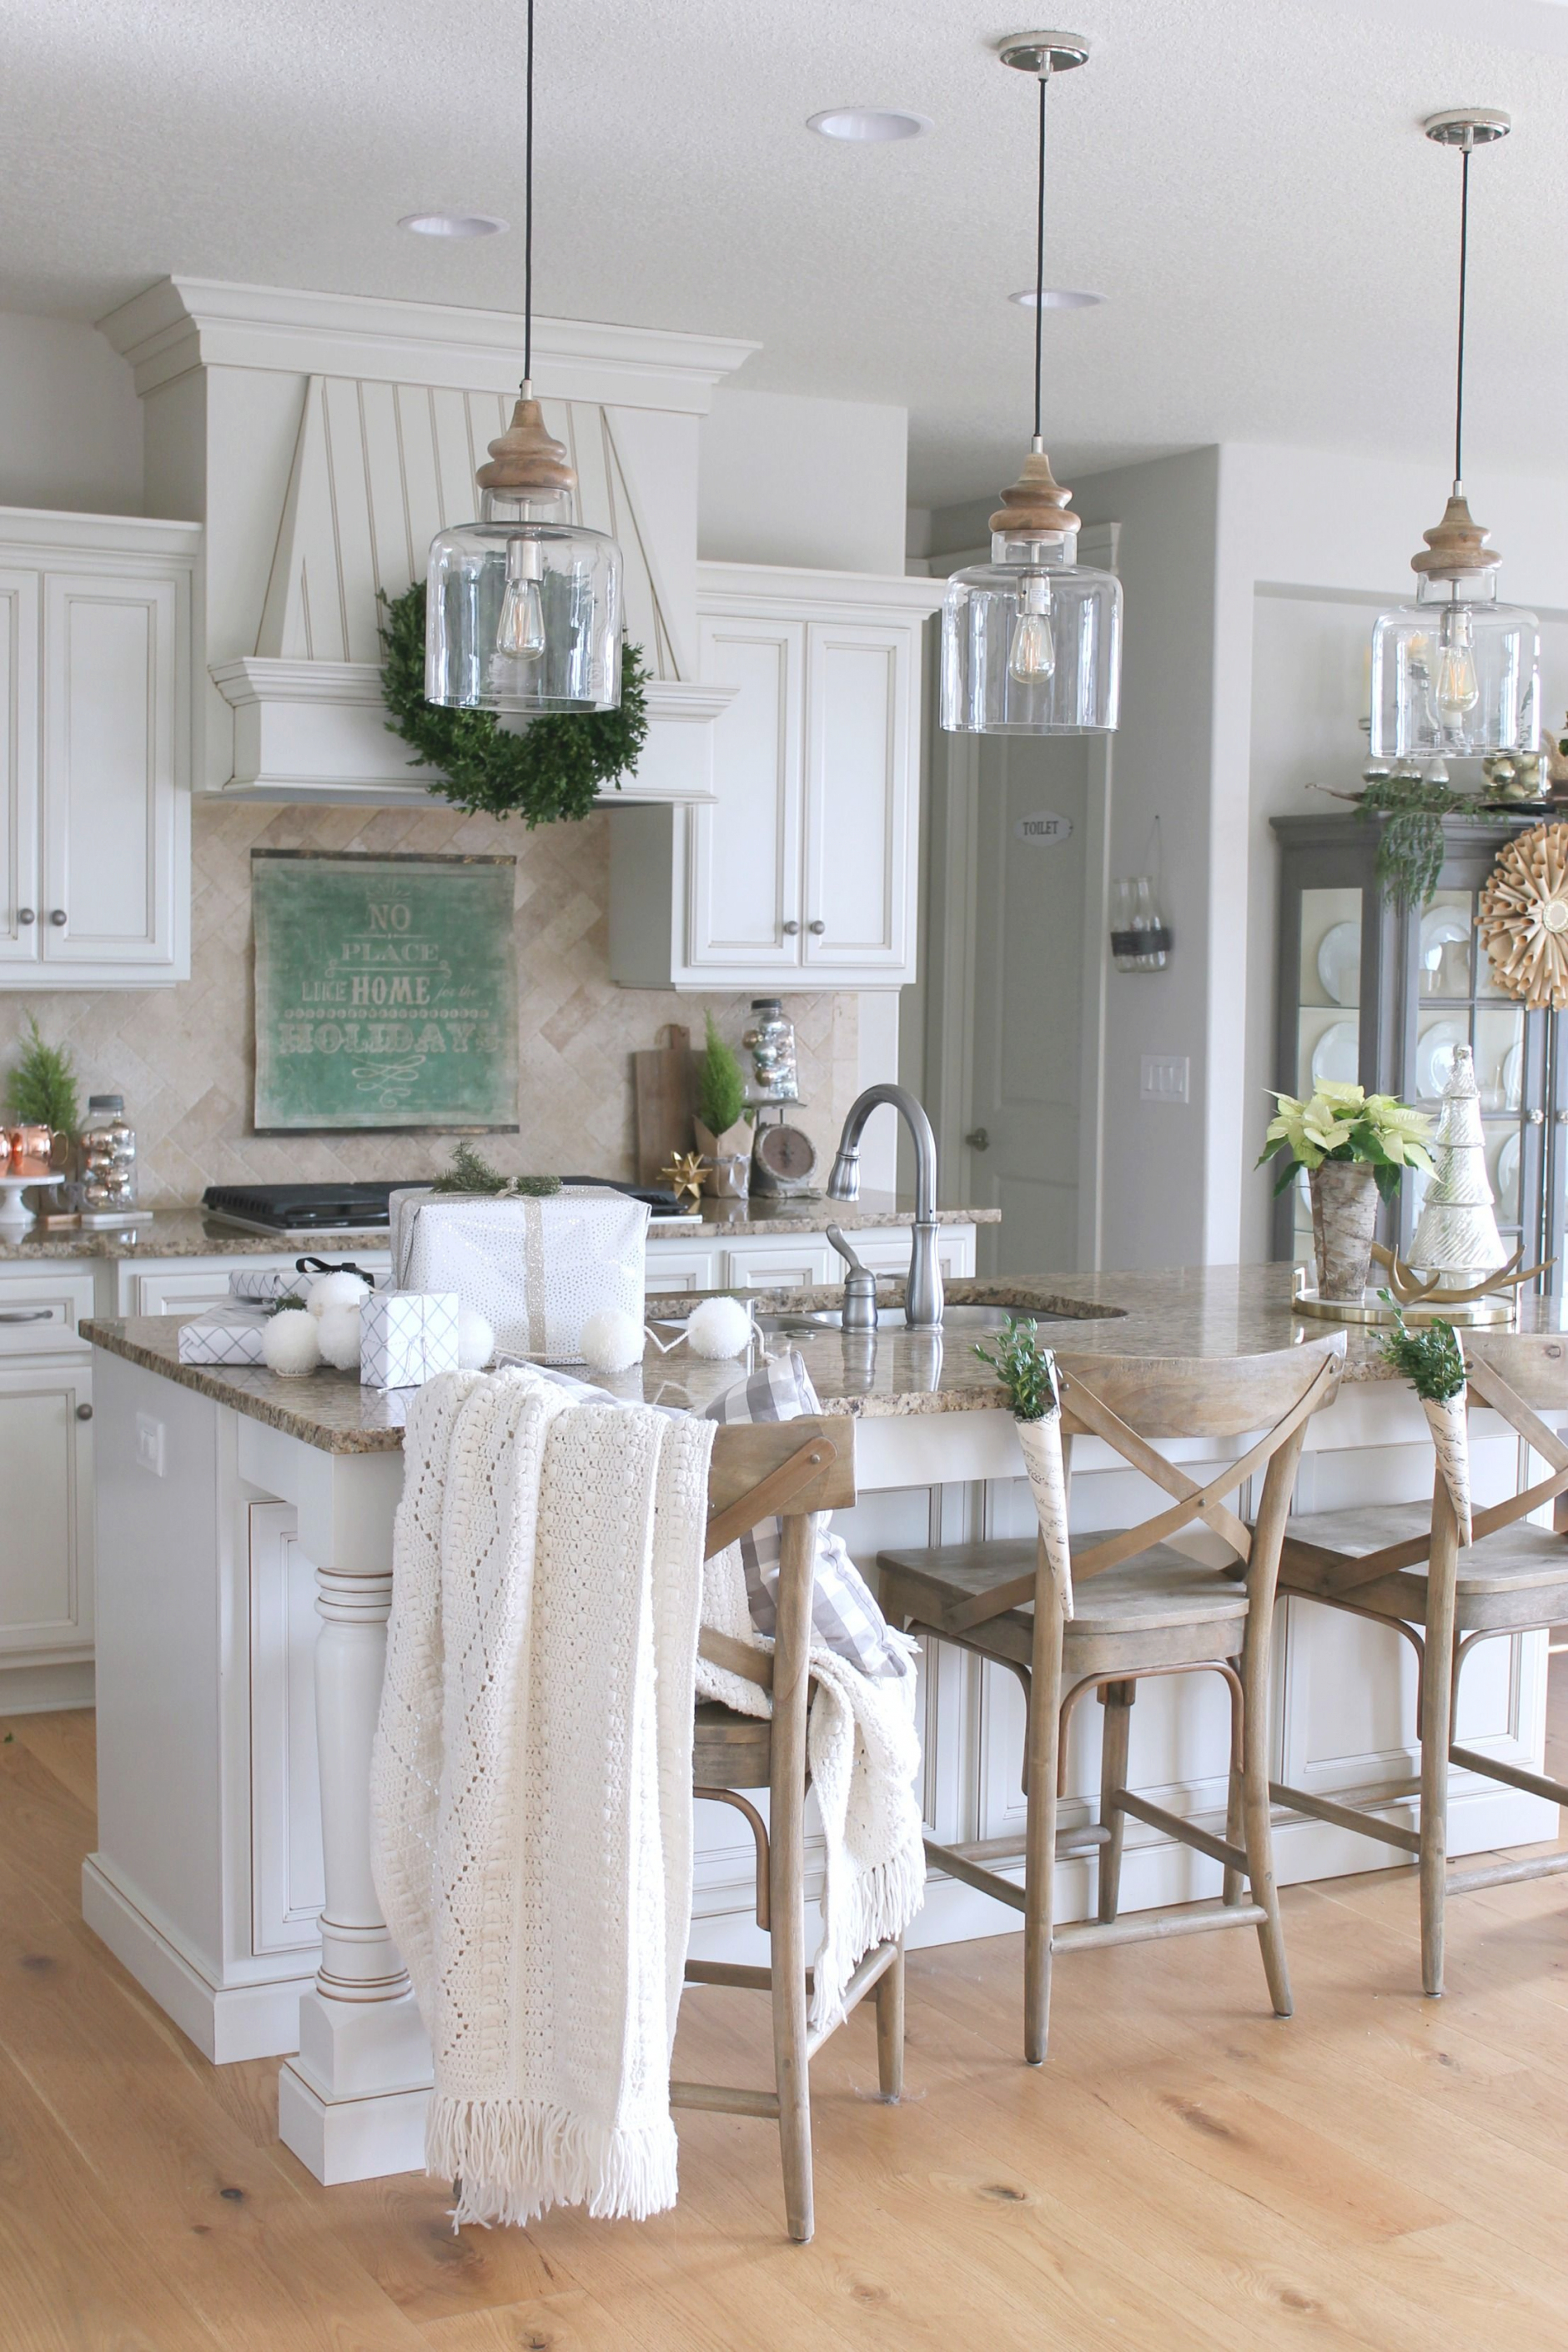 New Farmhouse Style Island Pendant Lights | Kitchens | Pinterest within Best  Pendant Lights For Kitchen